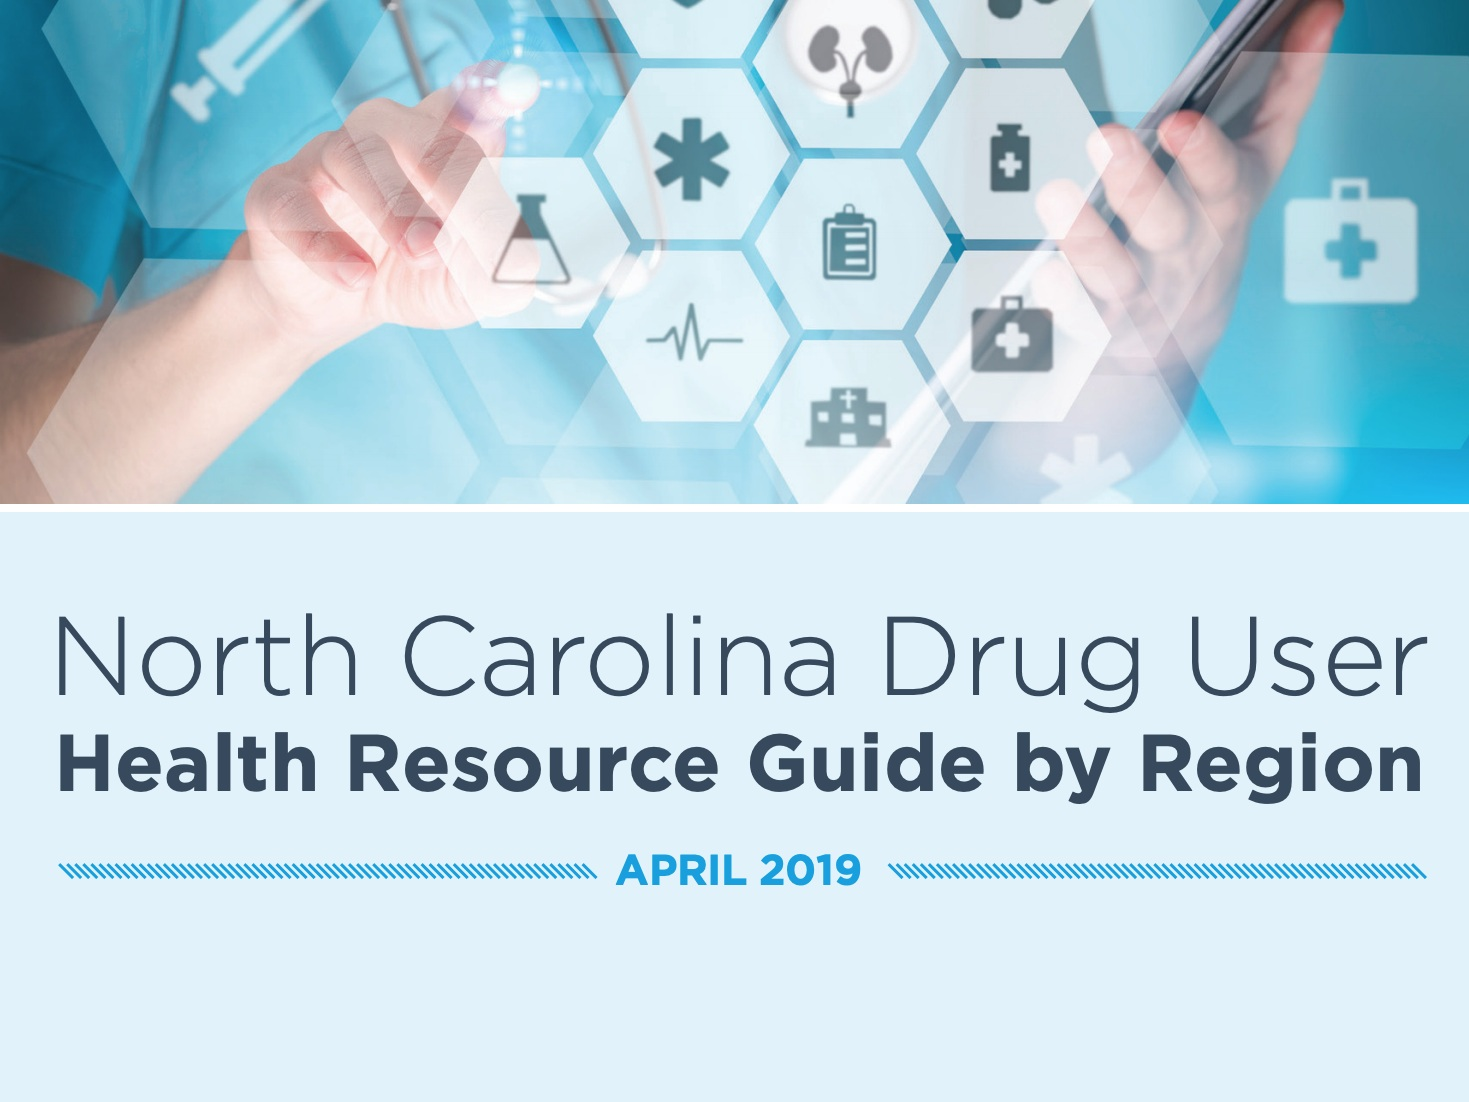 Drug user health resources - The North Carolina Drug User Health Resource Guide is full of region-specific resources and support options including but not limited to syringe access, drug treatment, testing and health services, and social services.